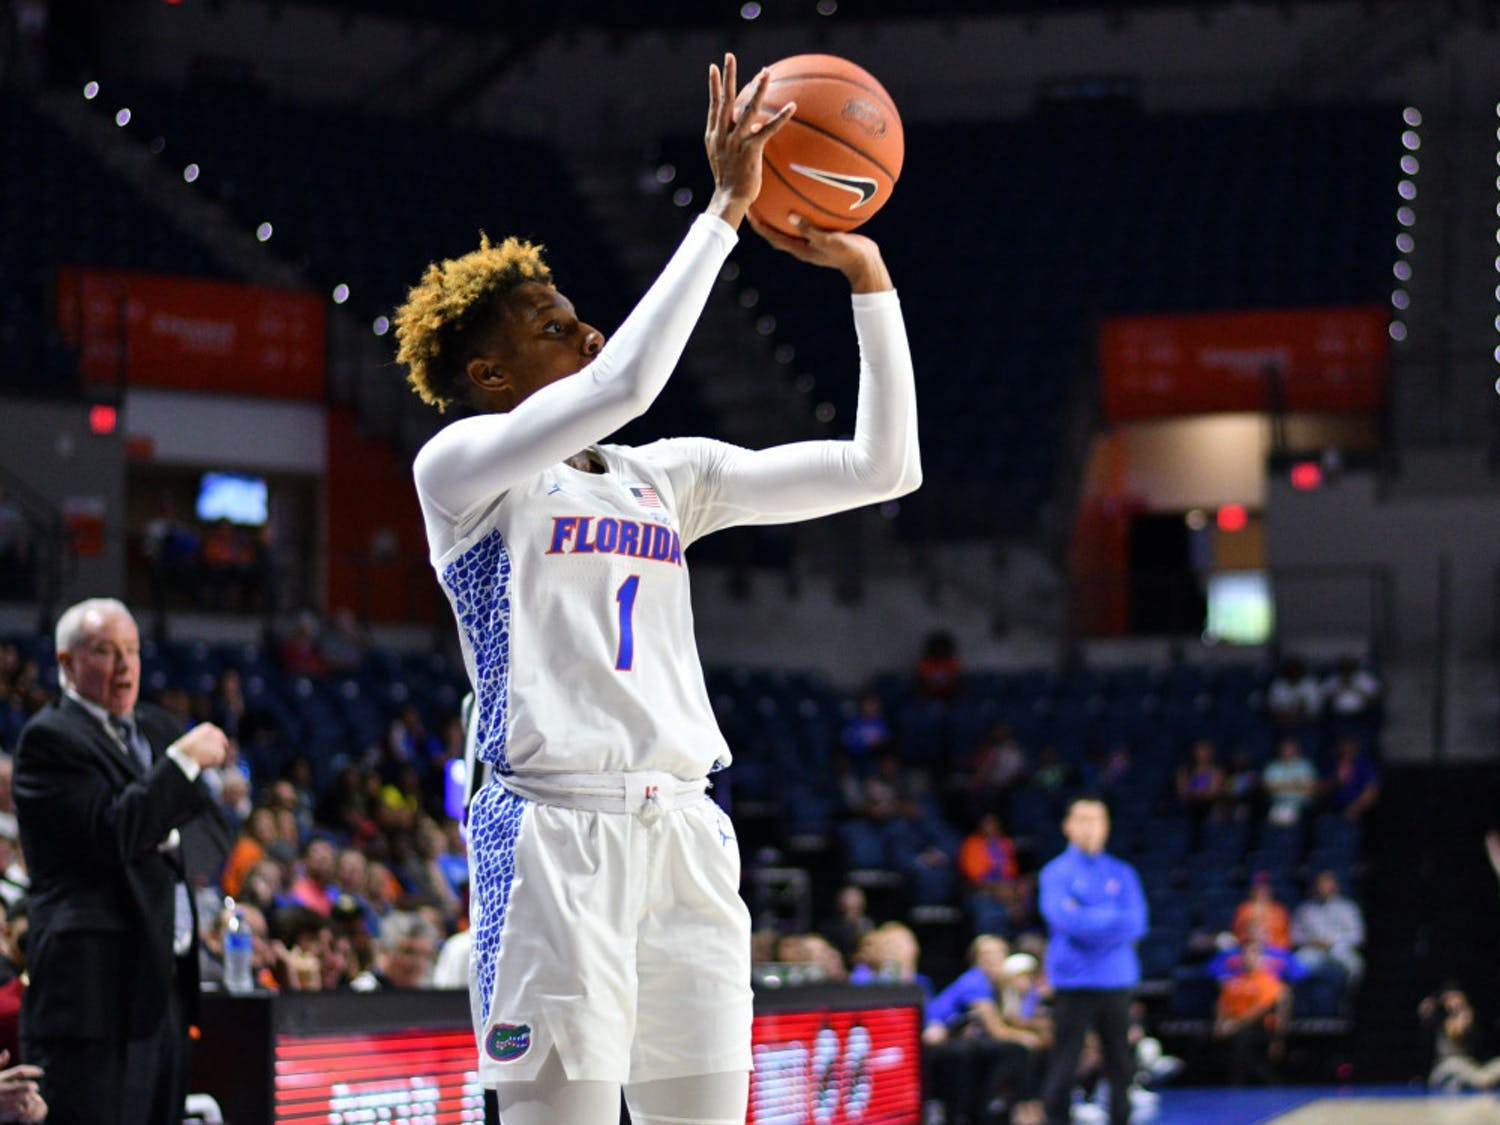 Gators guard Kiara Smith led the team in scoring during UF's 64-56 loss to Auburn on Sunday. She scored 15 points against the Tigers and went 3-of-6 from beyond the arc.